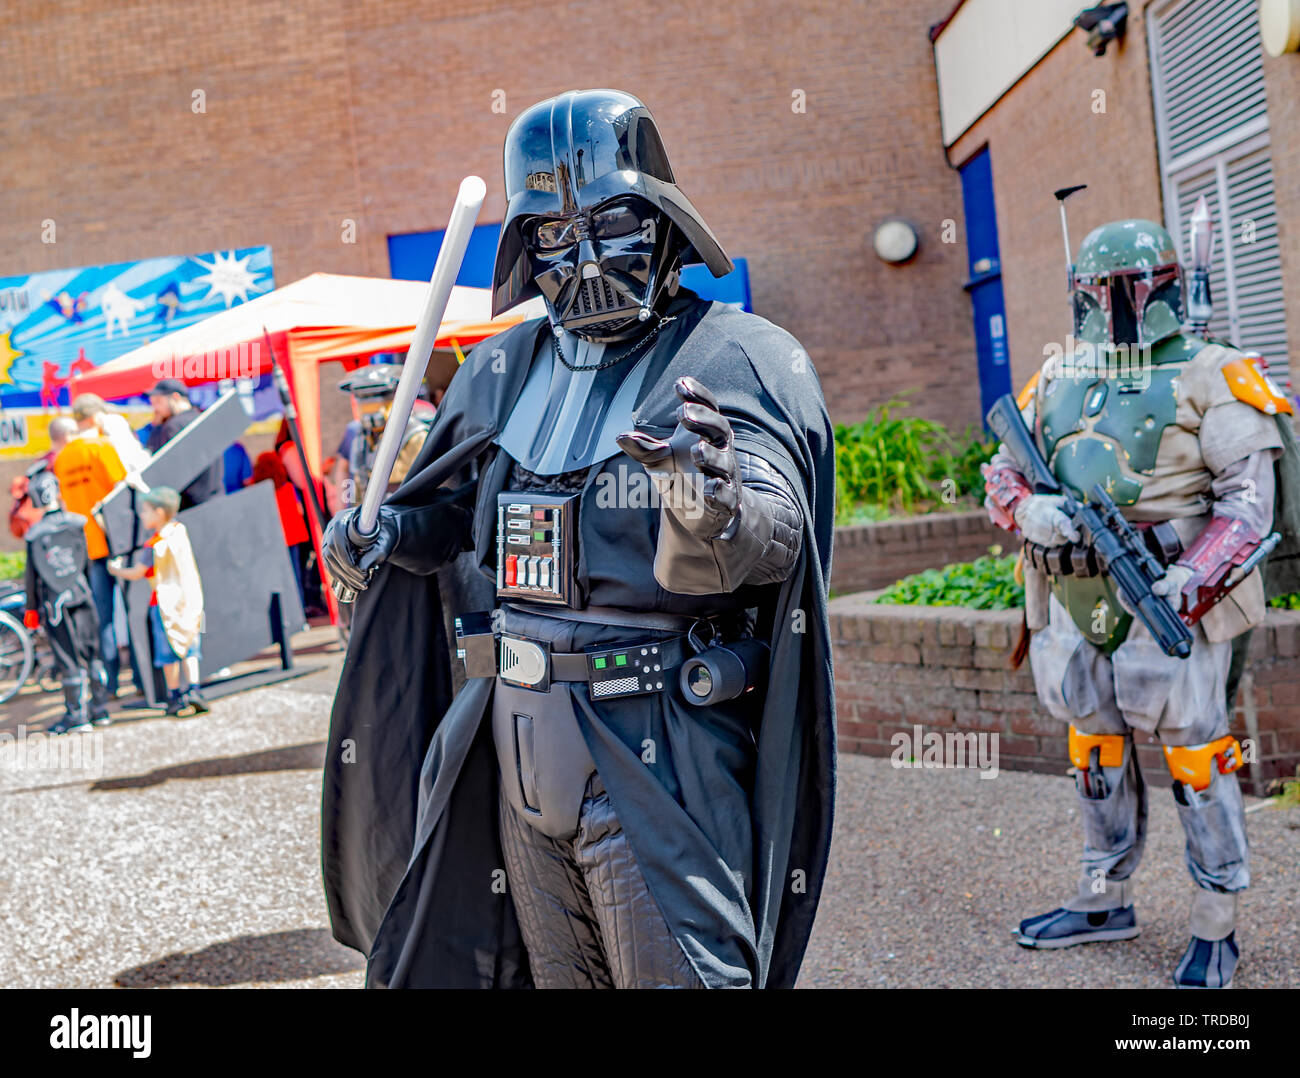 Great Yarmouth Comicon 2019 – A close up portrait of man dressed up as Darth Vader, with a storm trooper in the background, outside the entrance to th - Stock Image